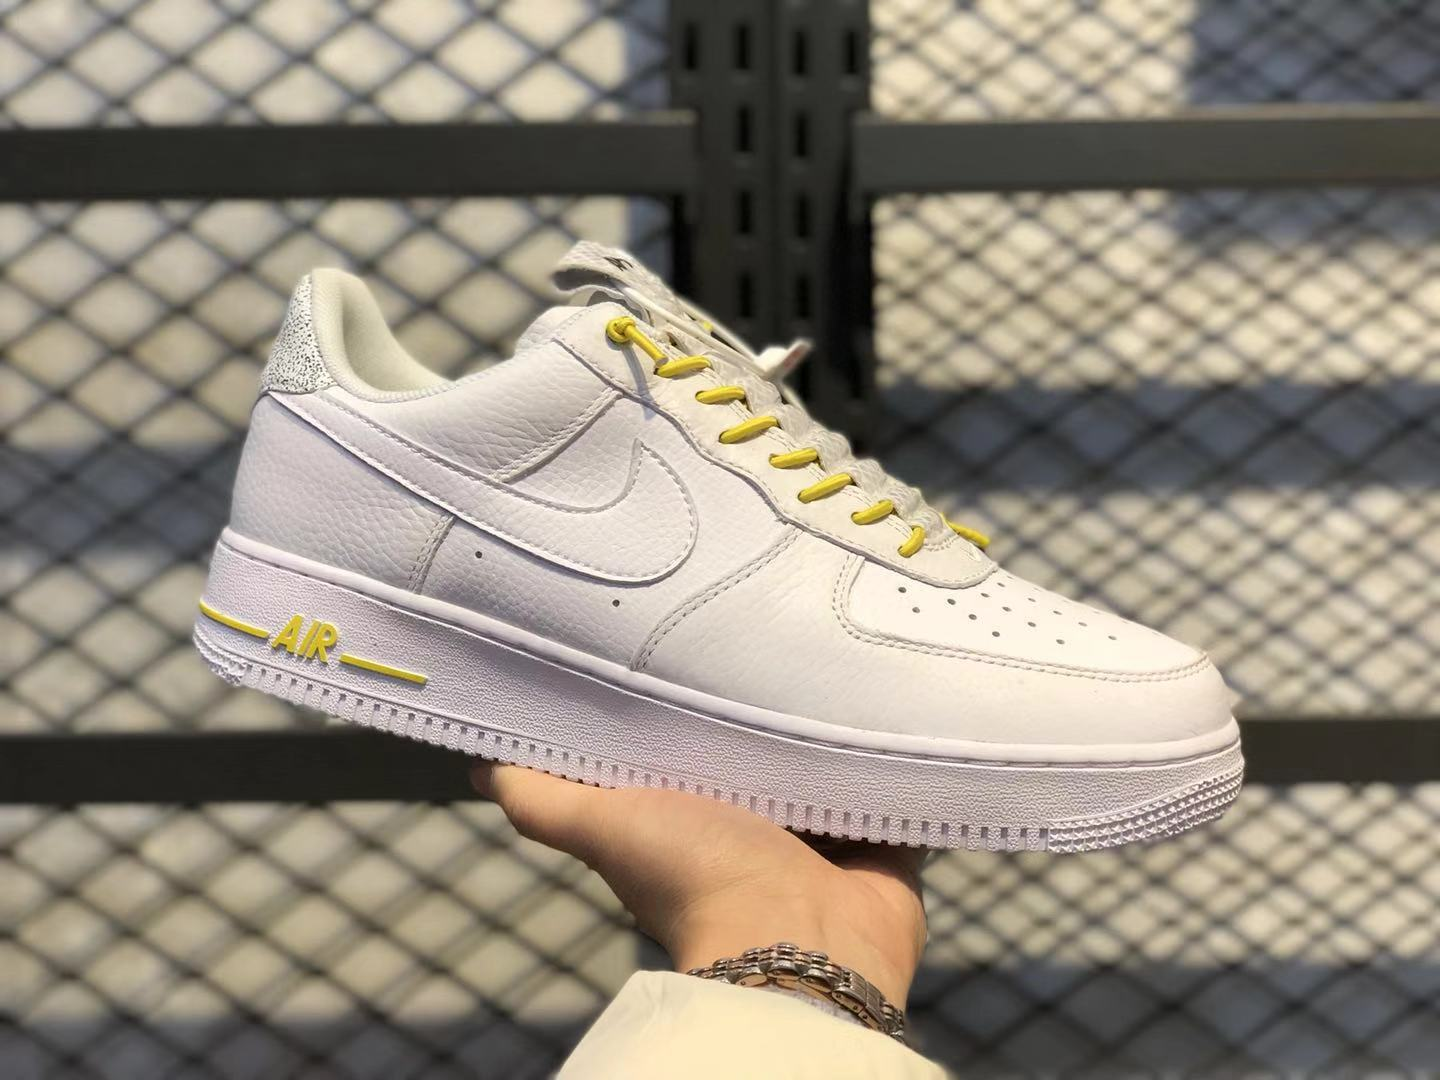 Nike Wmns Air Force 1 Low White/Chrome Yellow Classic Shoes In Stock 898889-104